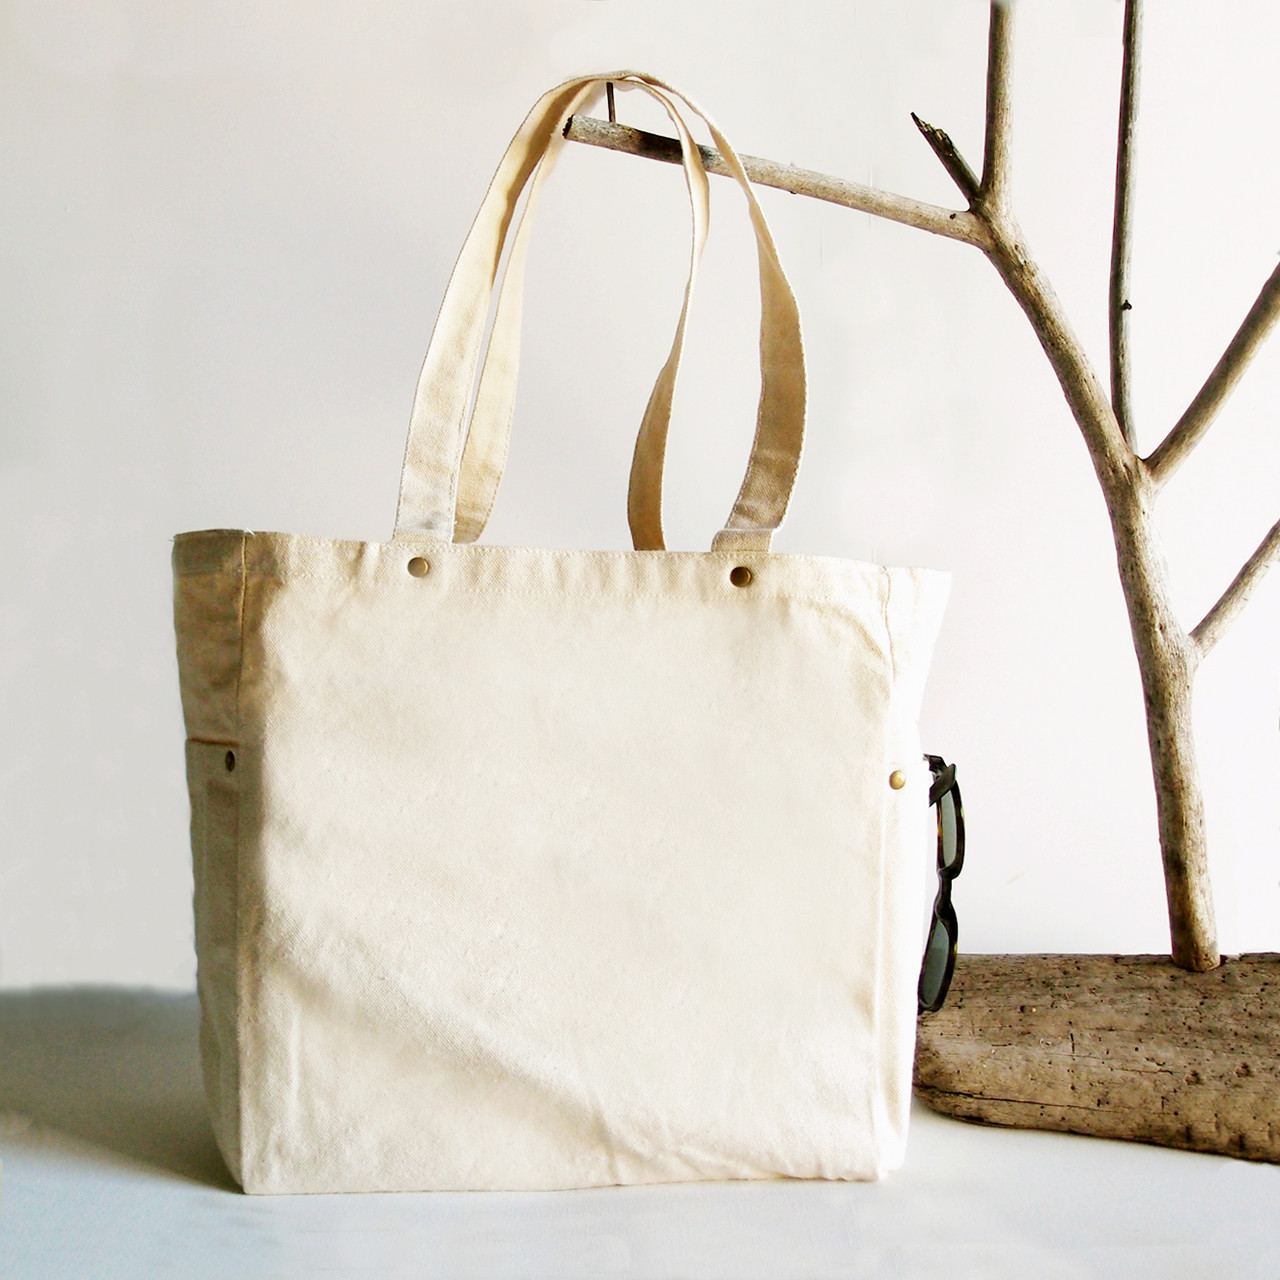 Washed Canvas Tote Bag with Side Pockets Natural B798-71, Wholesale Canvas Tote Bags | Packaging Decor